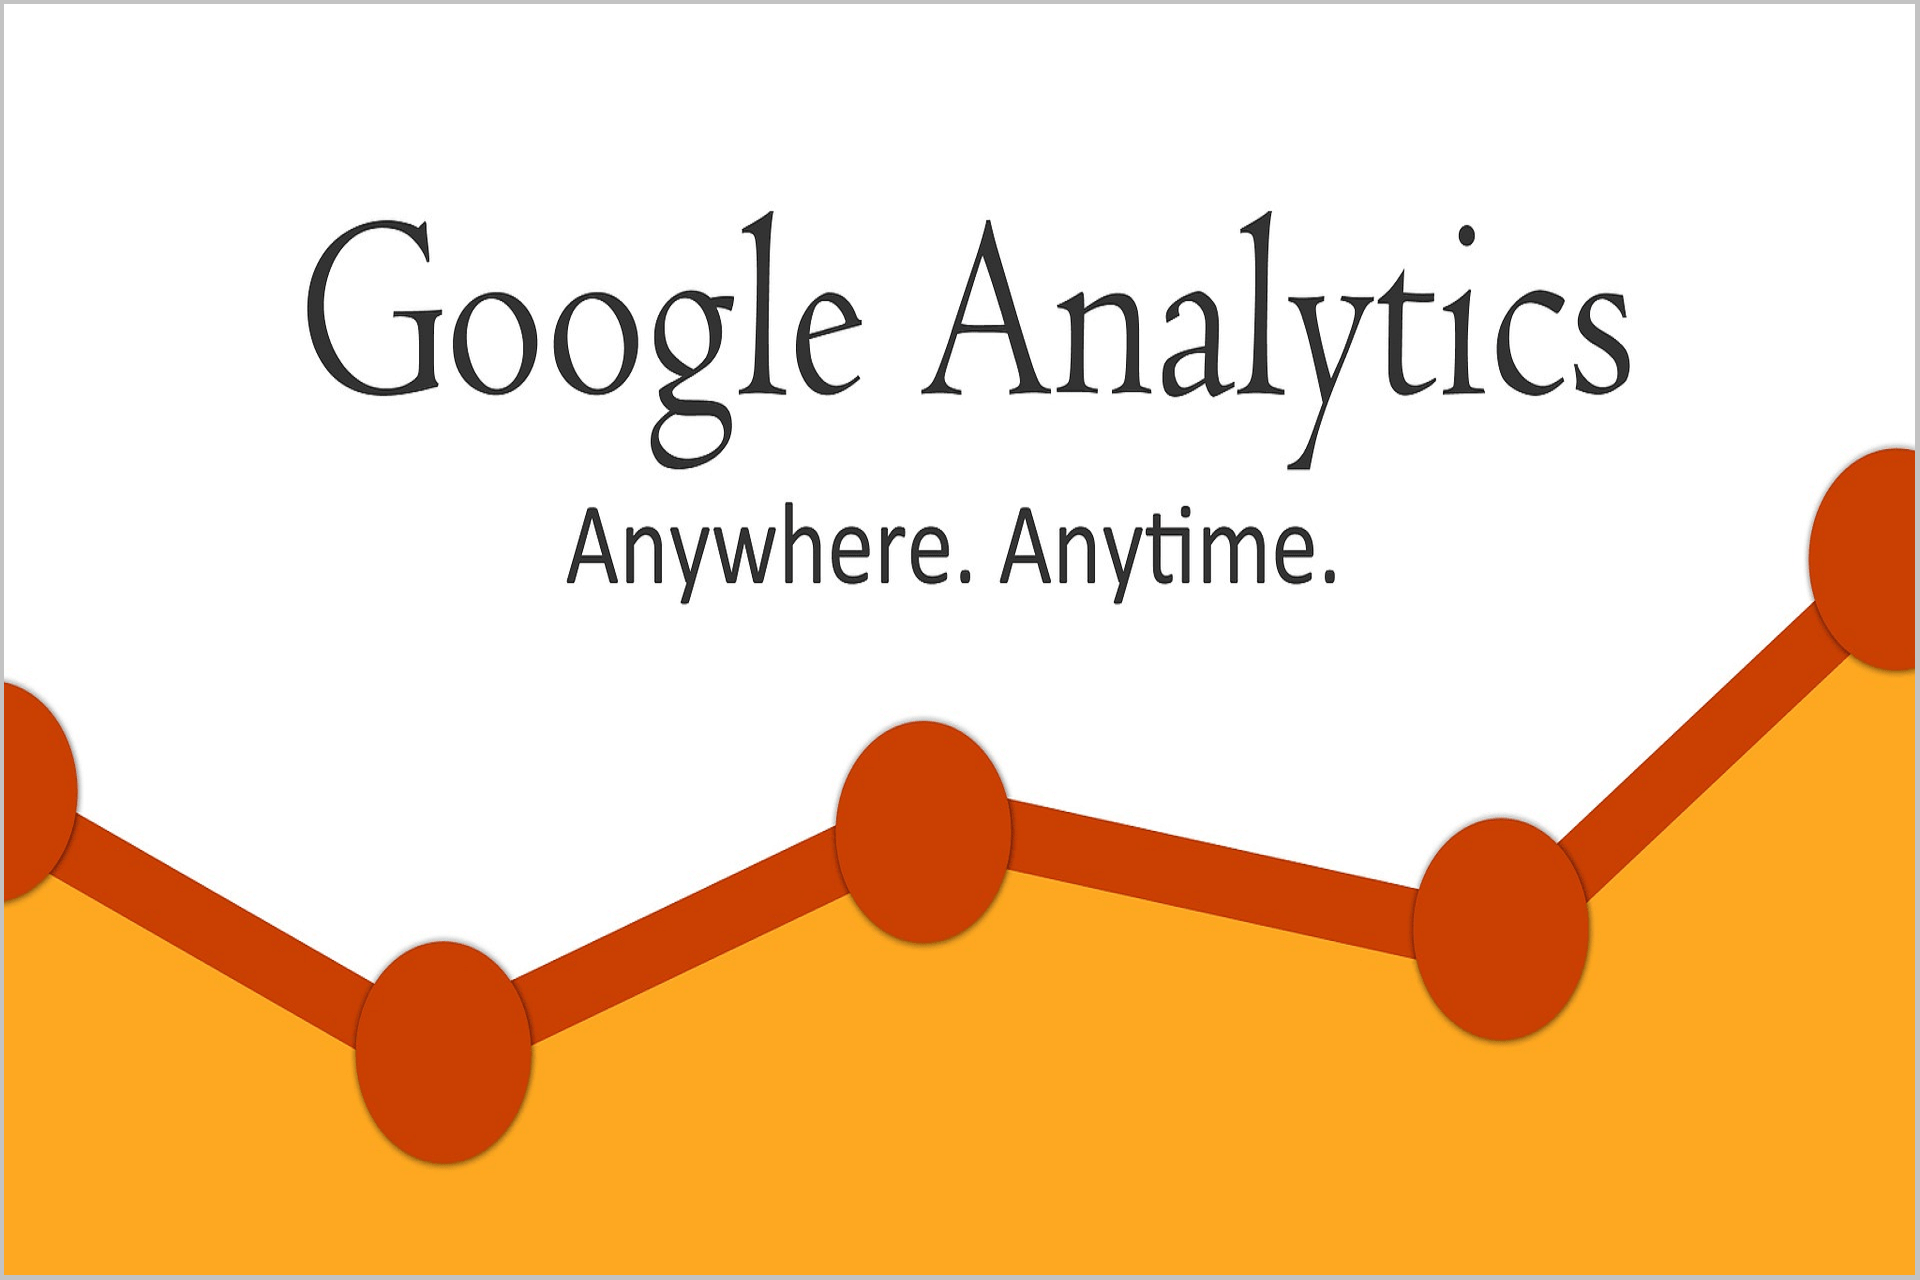 Why and How to Add Google Analytics Tracking to a Website